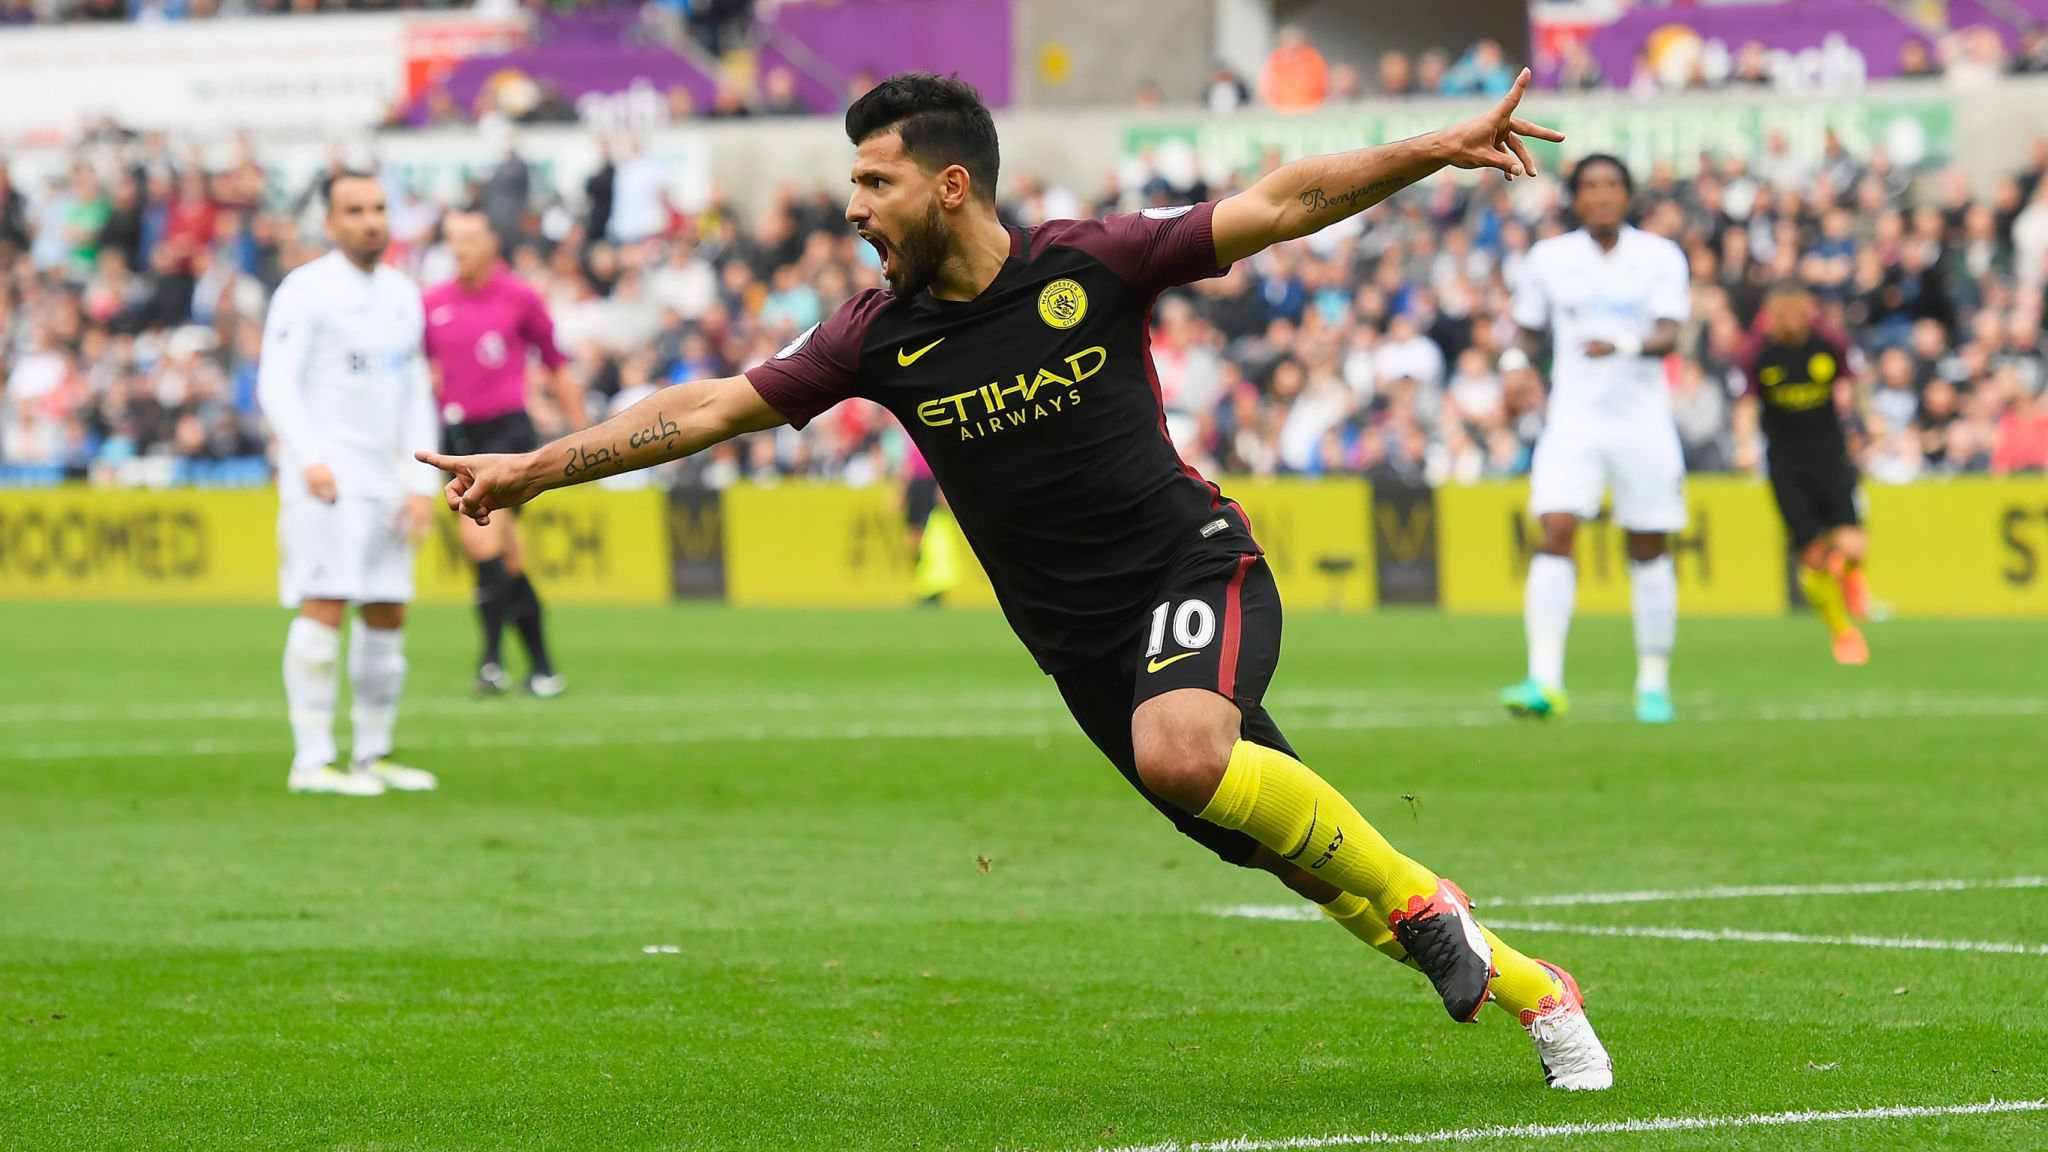 28 goals in his last 27 Premier League appearances - City will be hoping Sergio continues his strike rate against Spurs.